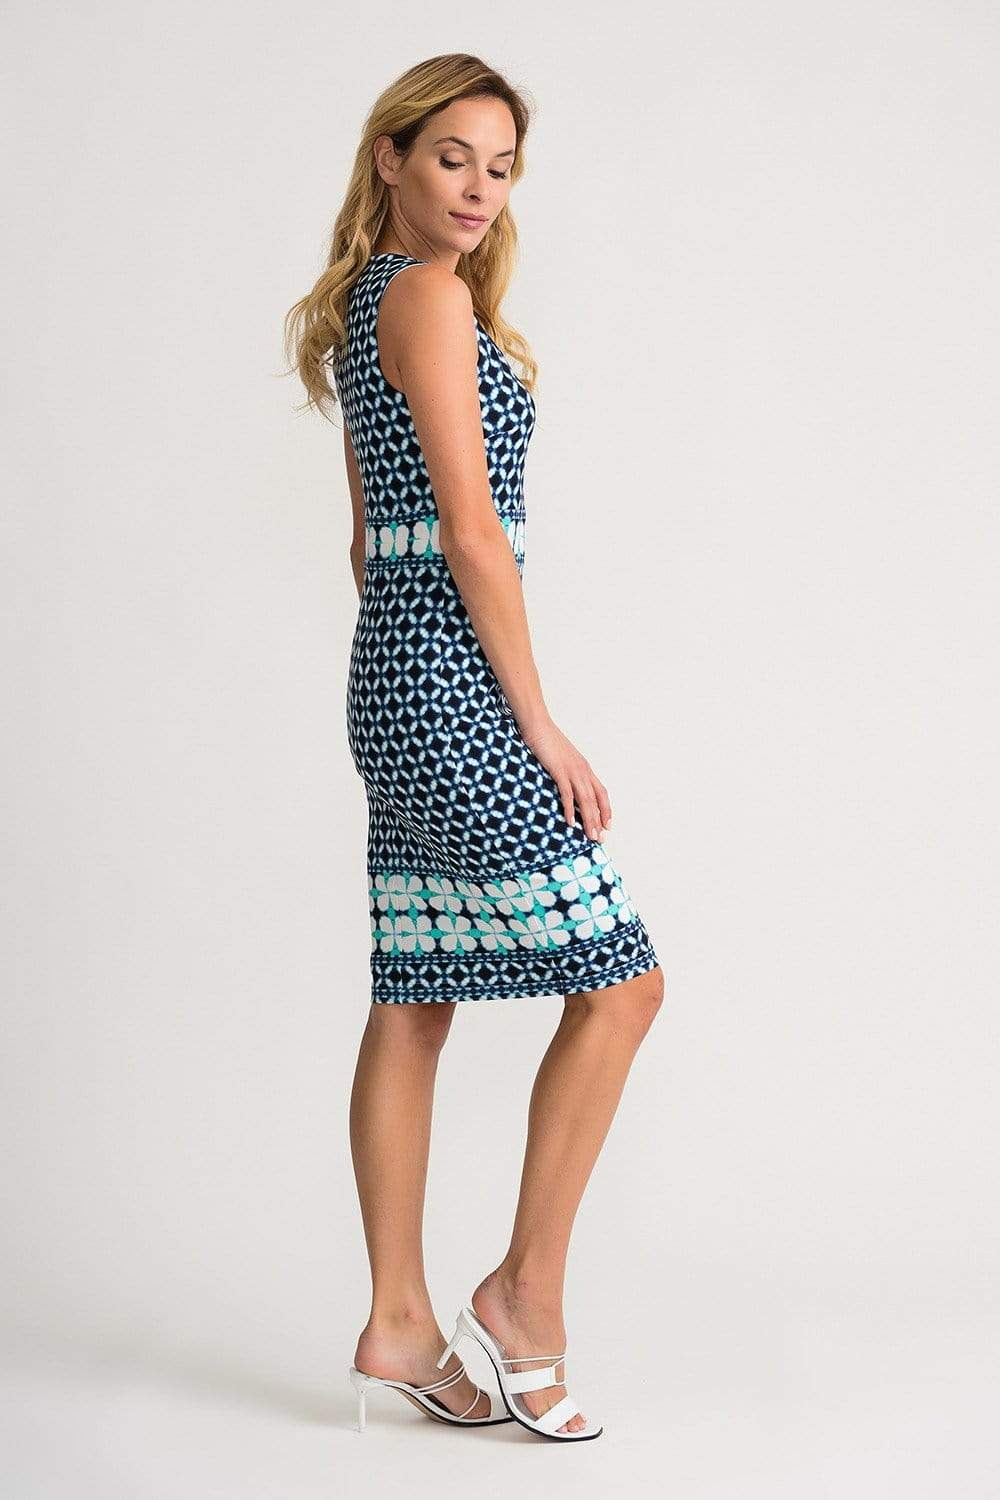 Joseph Ribkoff Dresses Joseph Ribkoff Blue Printed 202213 Dress izzi-of-baslow